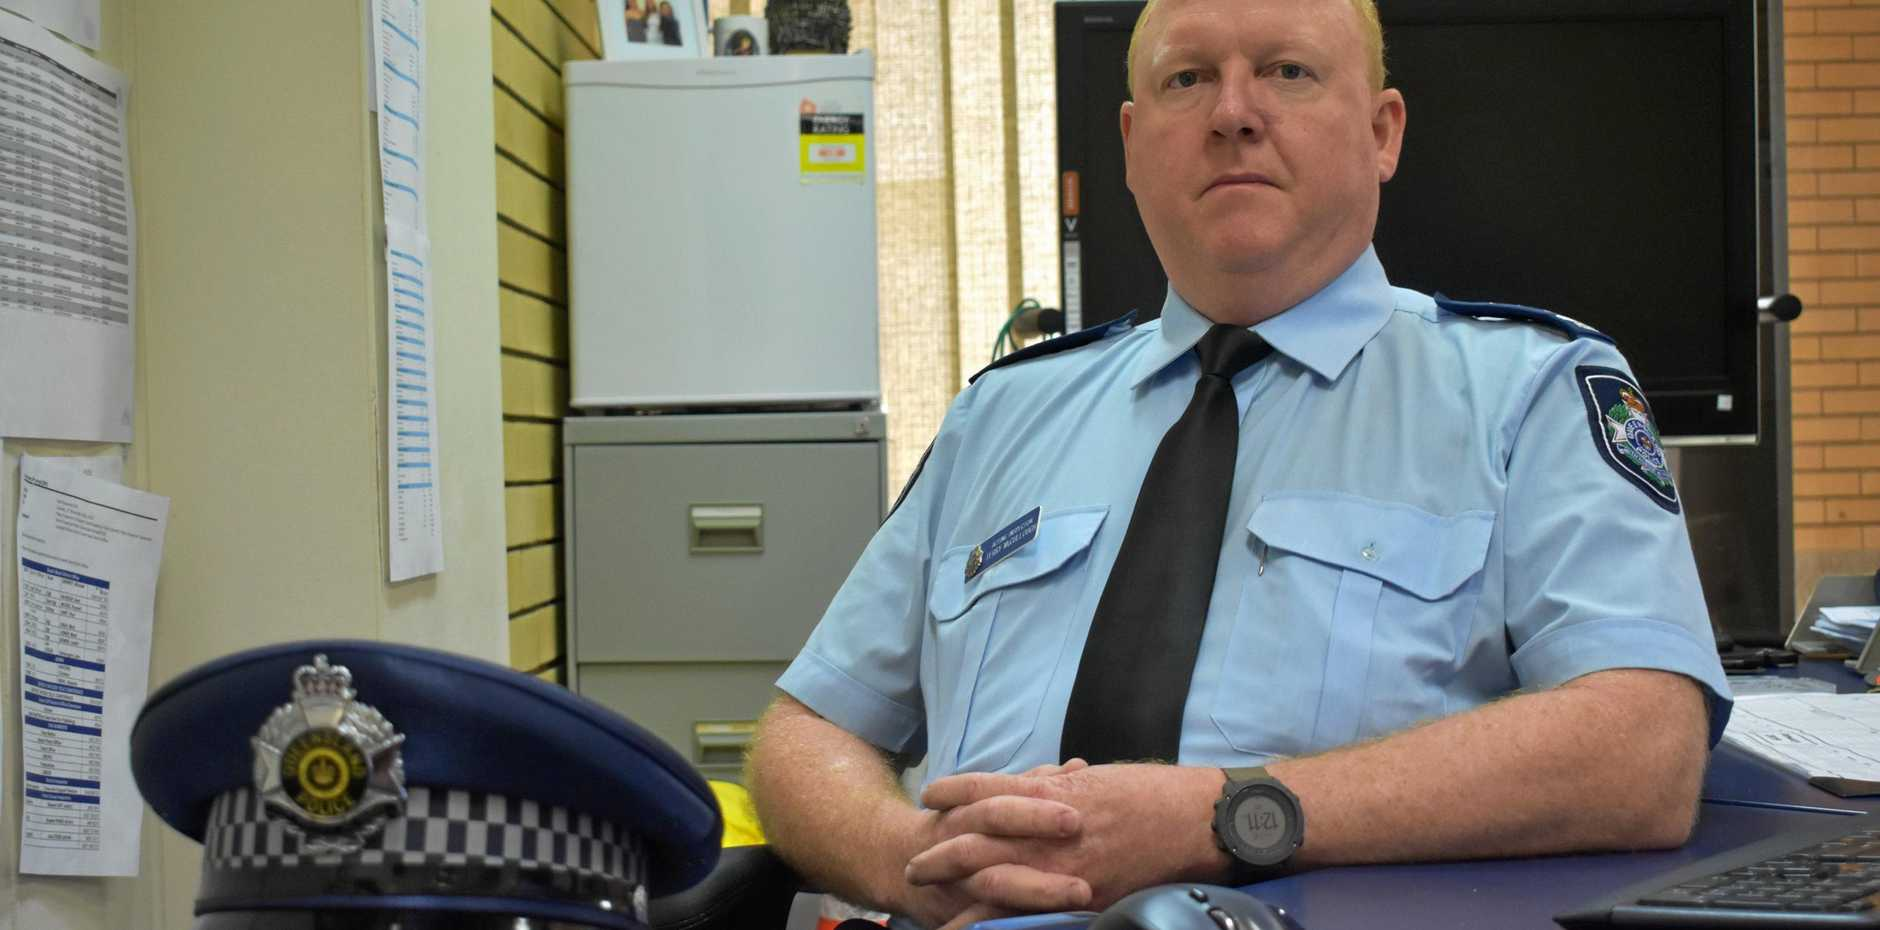 LIVES DESTROYED: Dalby Police have seen children as young as 12 turn to crime to fund methamphetamine addictions. Pictured: Senior Sergeant Terry McCullough.